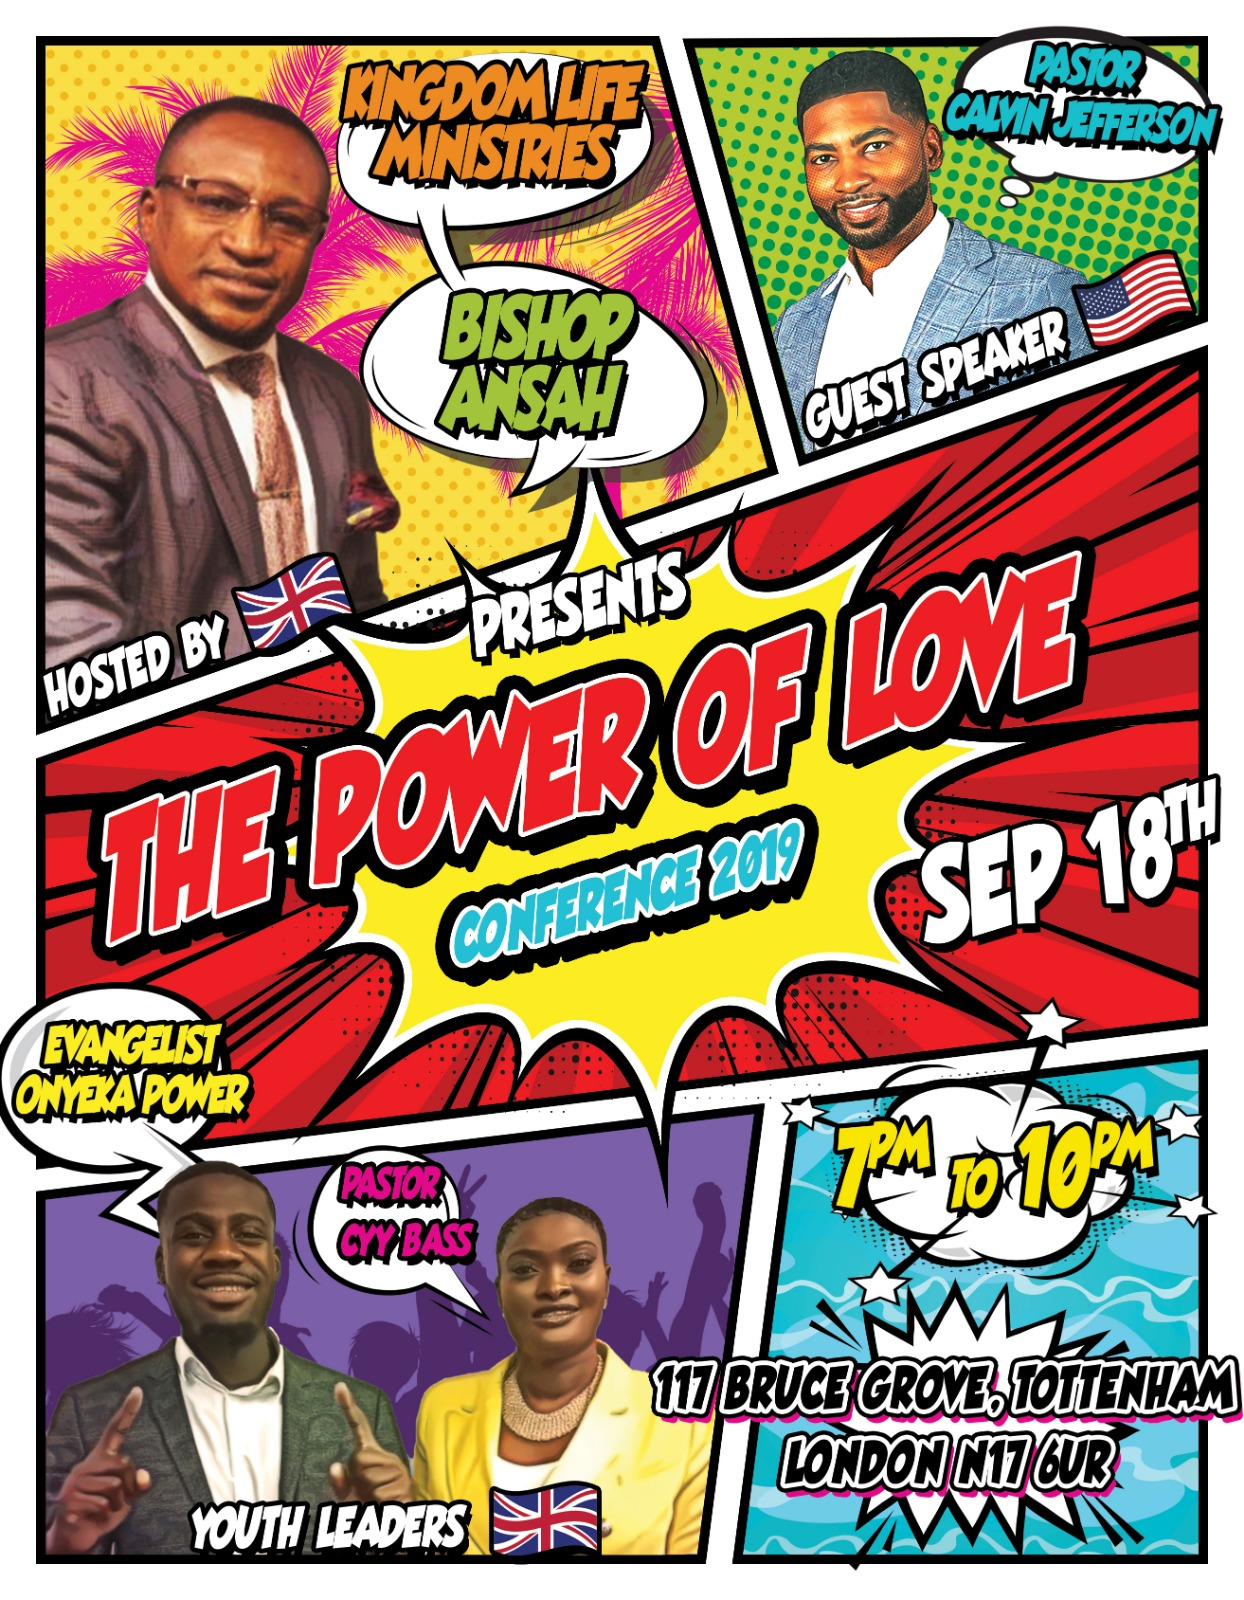 Kingdom Life Ministries  The power of Love Sept 18th   Bruce Grove